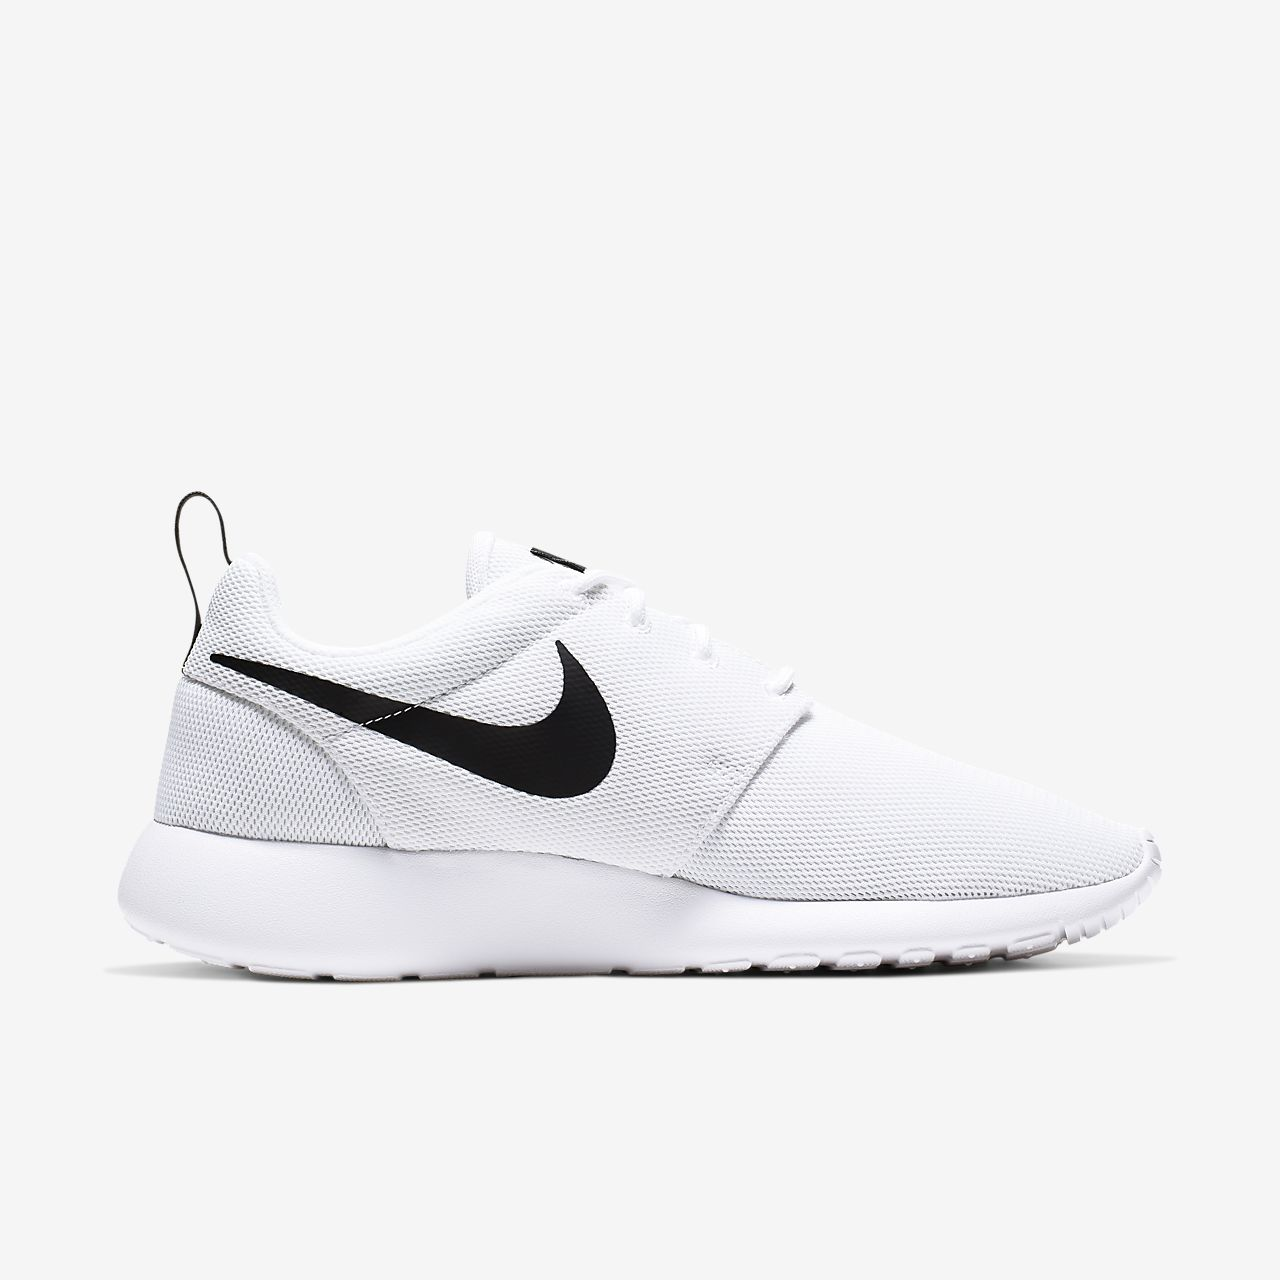 nike roshe one womens running shoes - sp1500unpak2